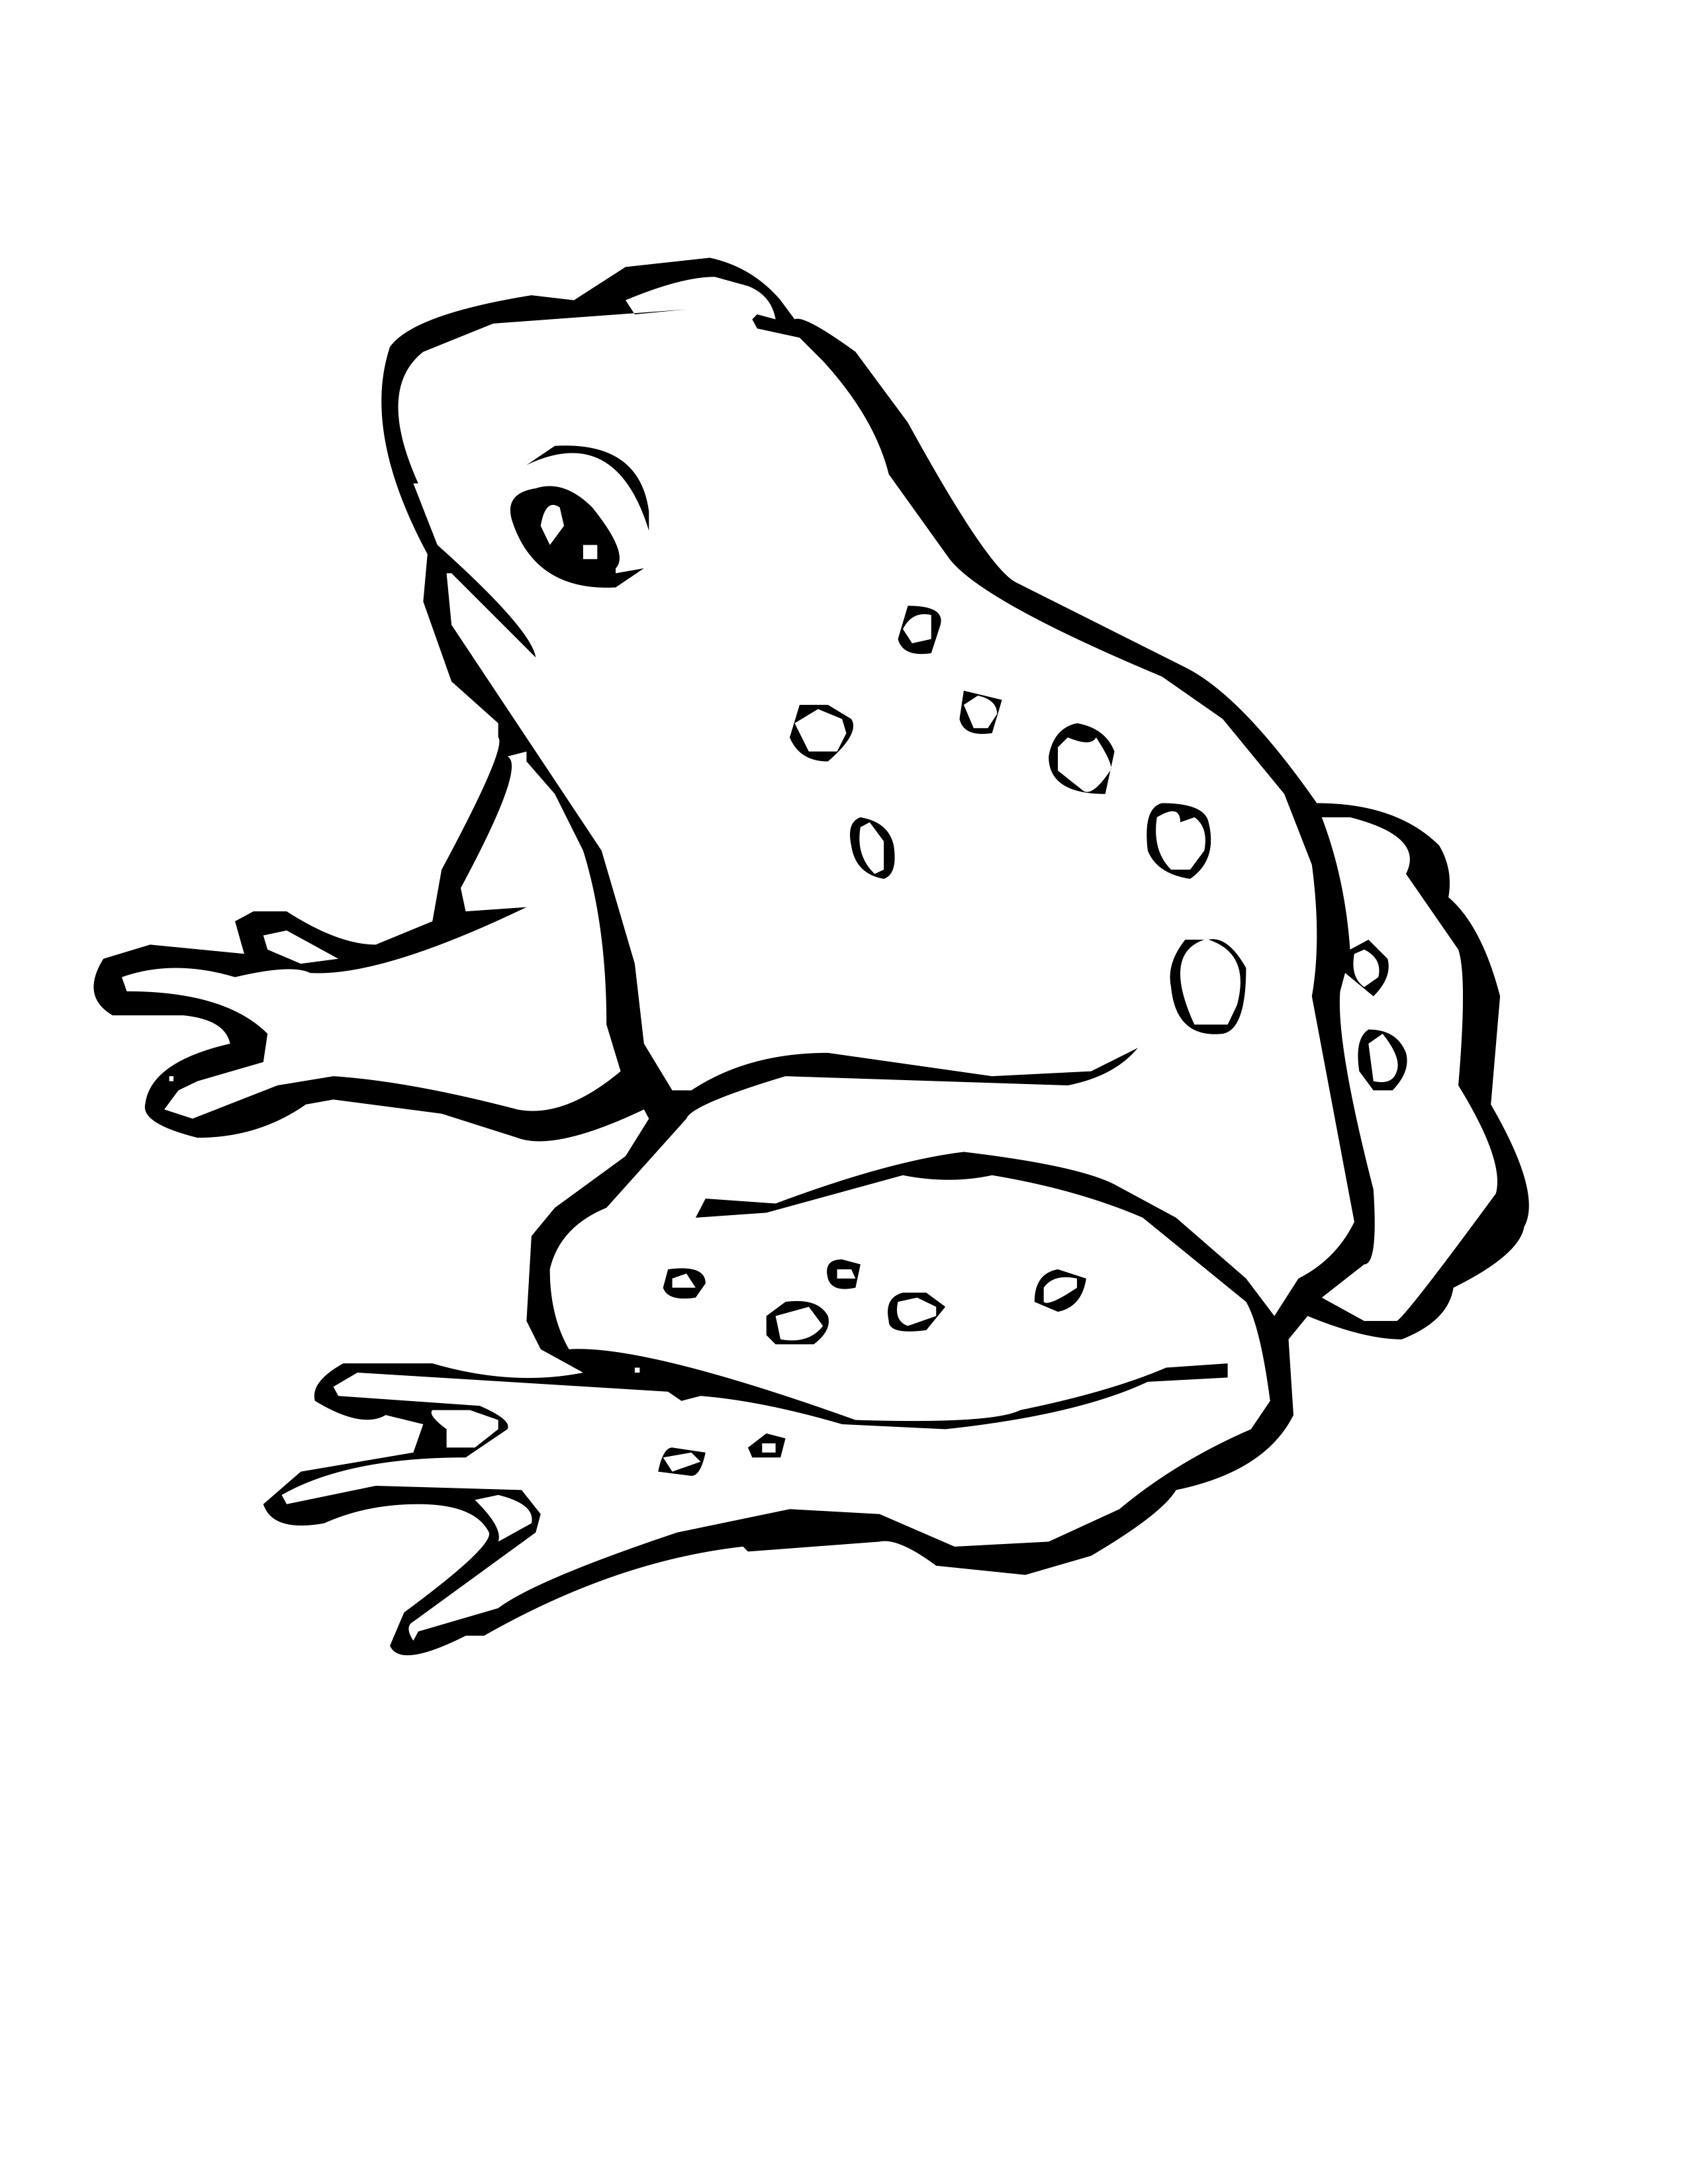 coloring image of a frog frogs for kids frogs kids coloring pages coloring image of frog a